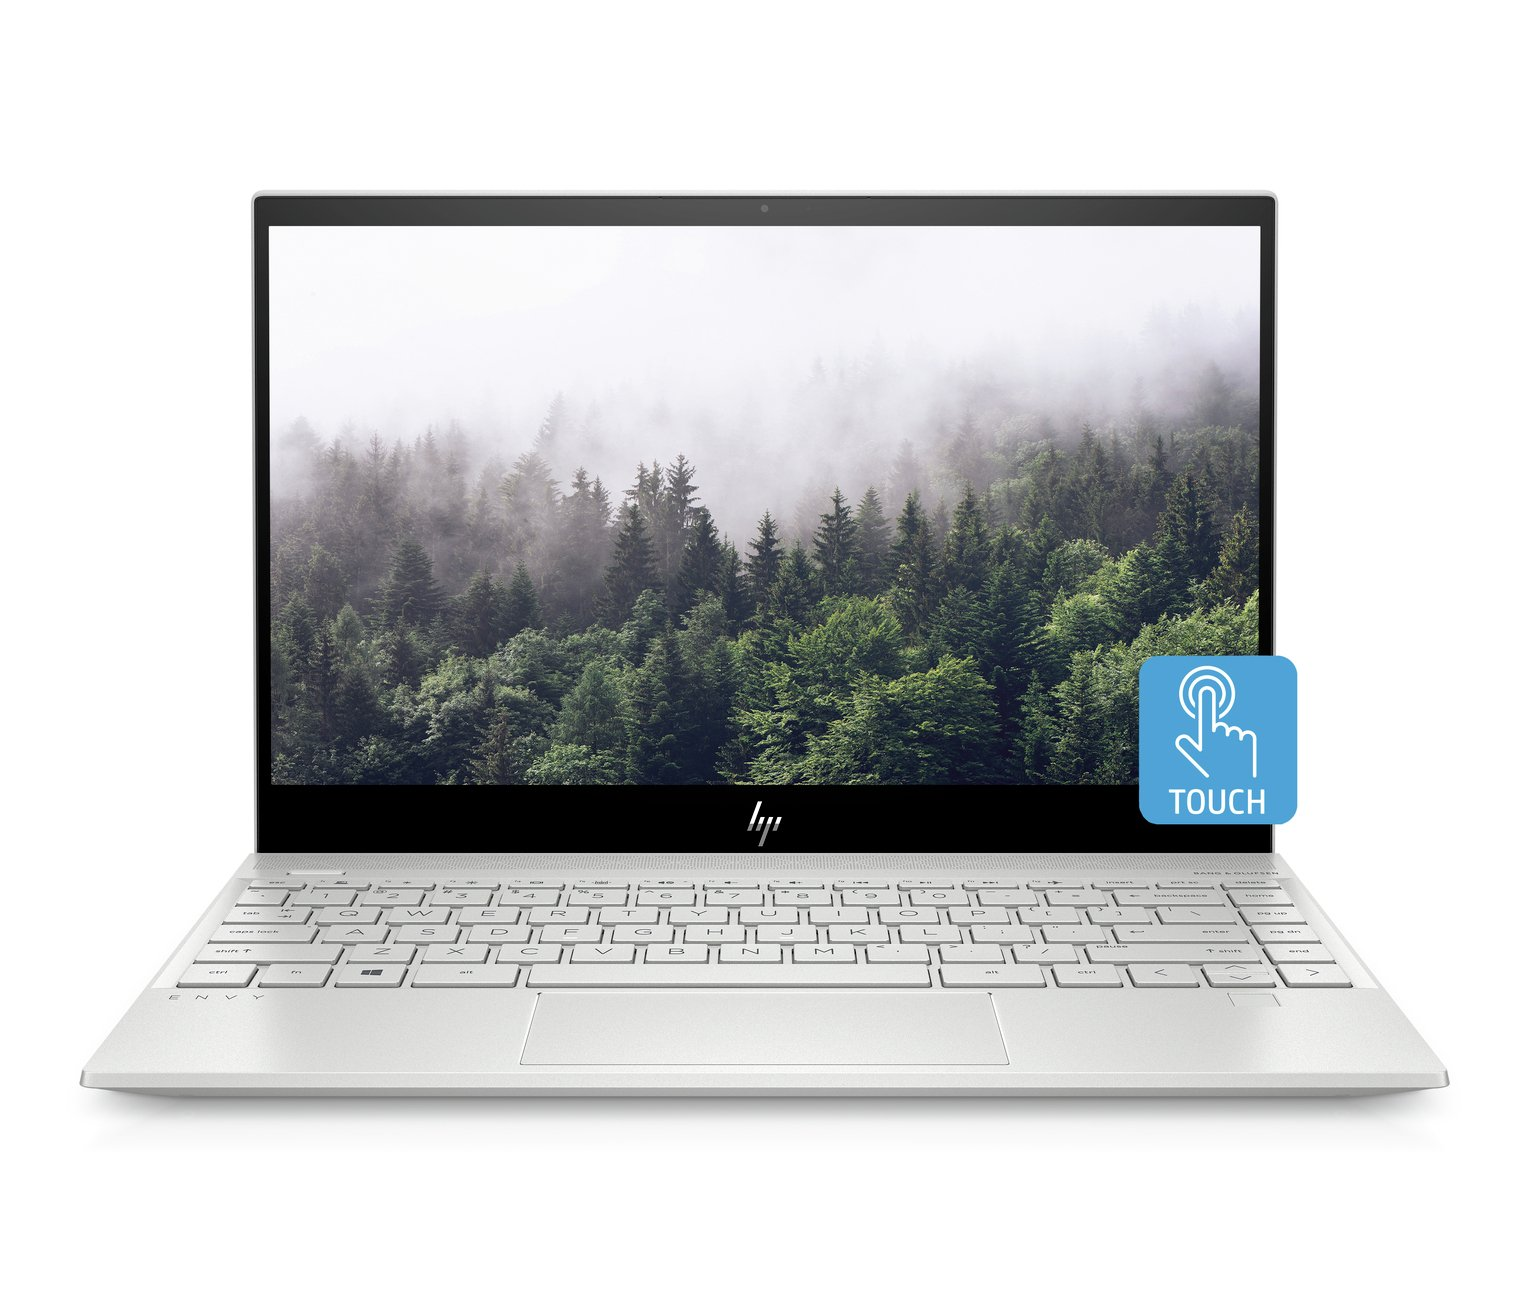 HP Envy 13 Inch i5 8GB 256GB FHD Laptop - Silver